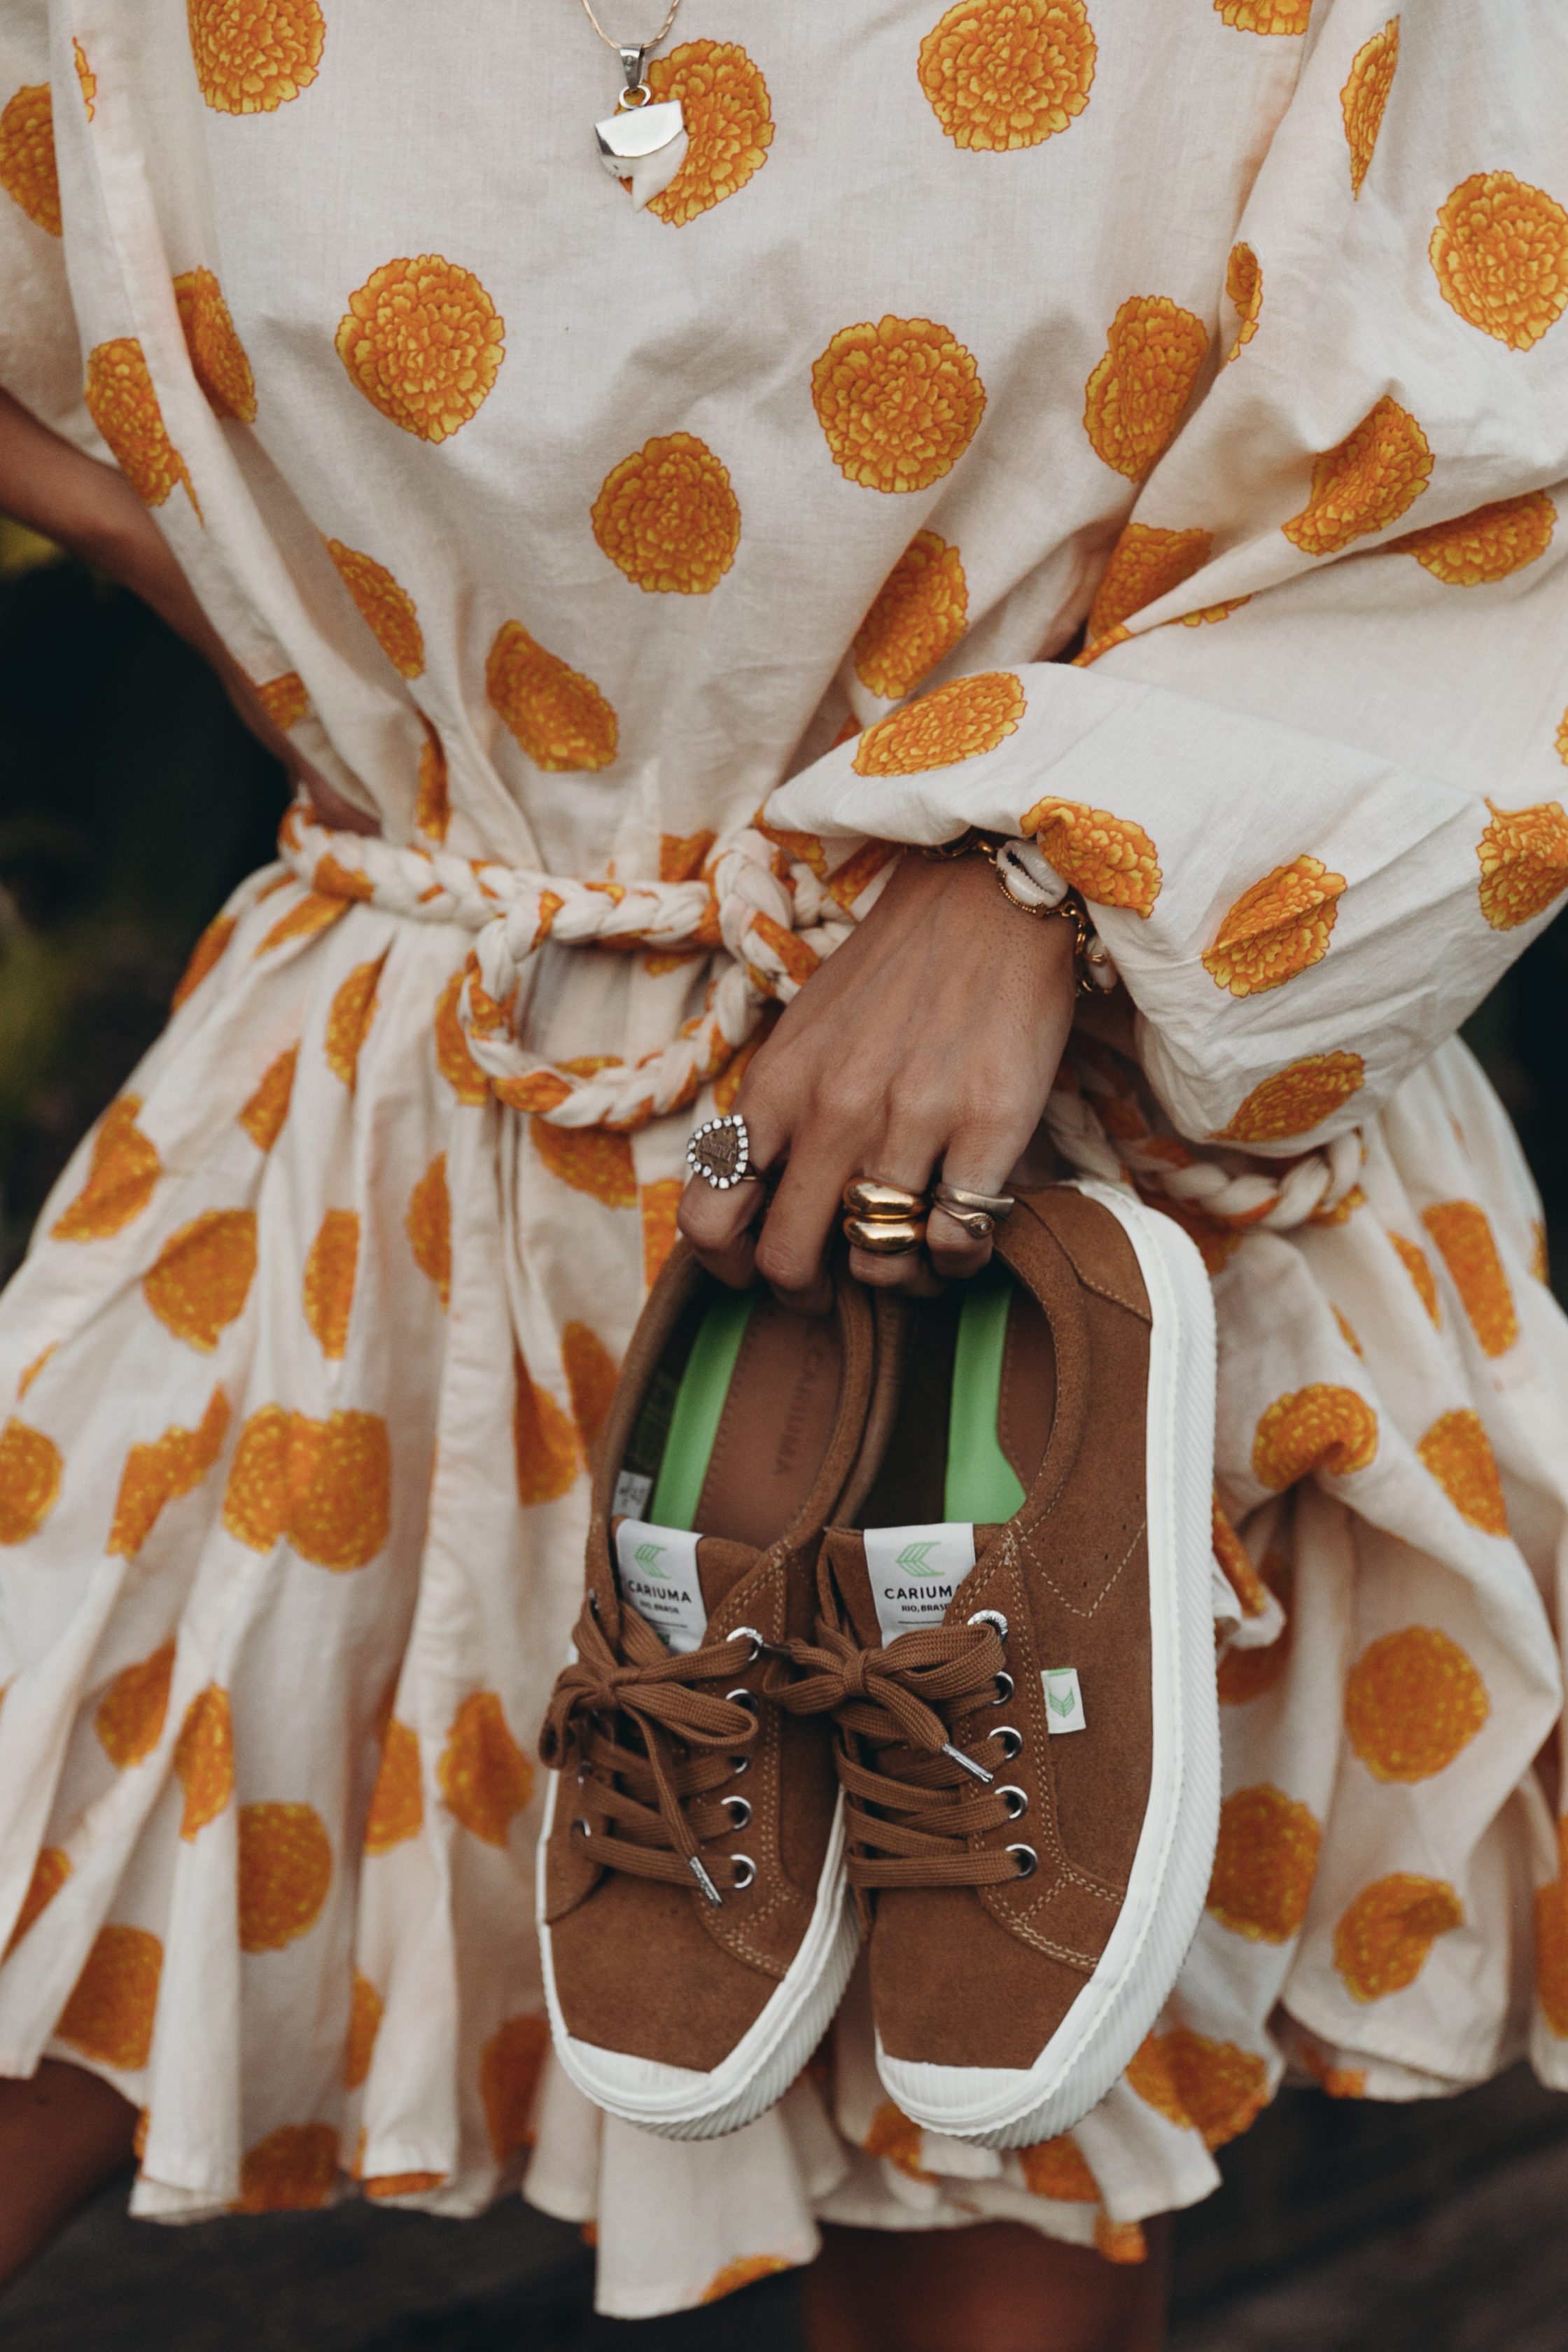 Sara Escudero of Collage Vintage wearing a Rhode dress and Cariuma suede sneakers